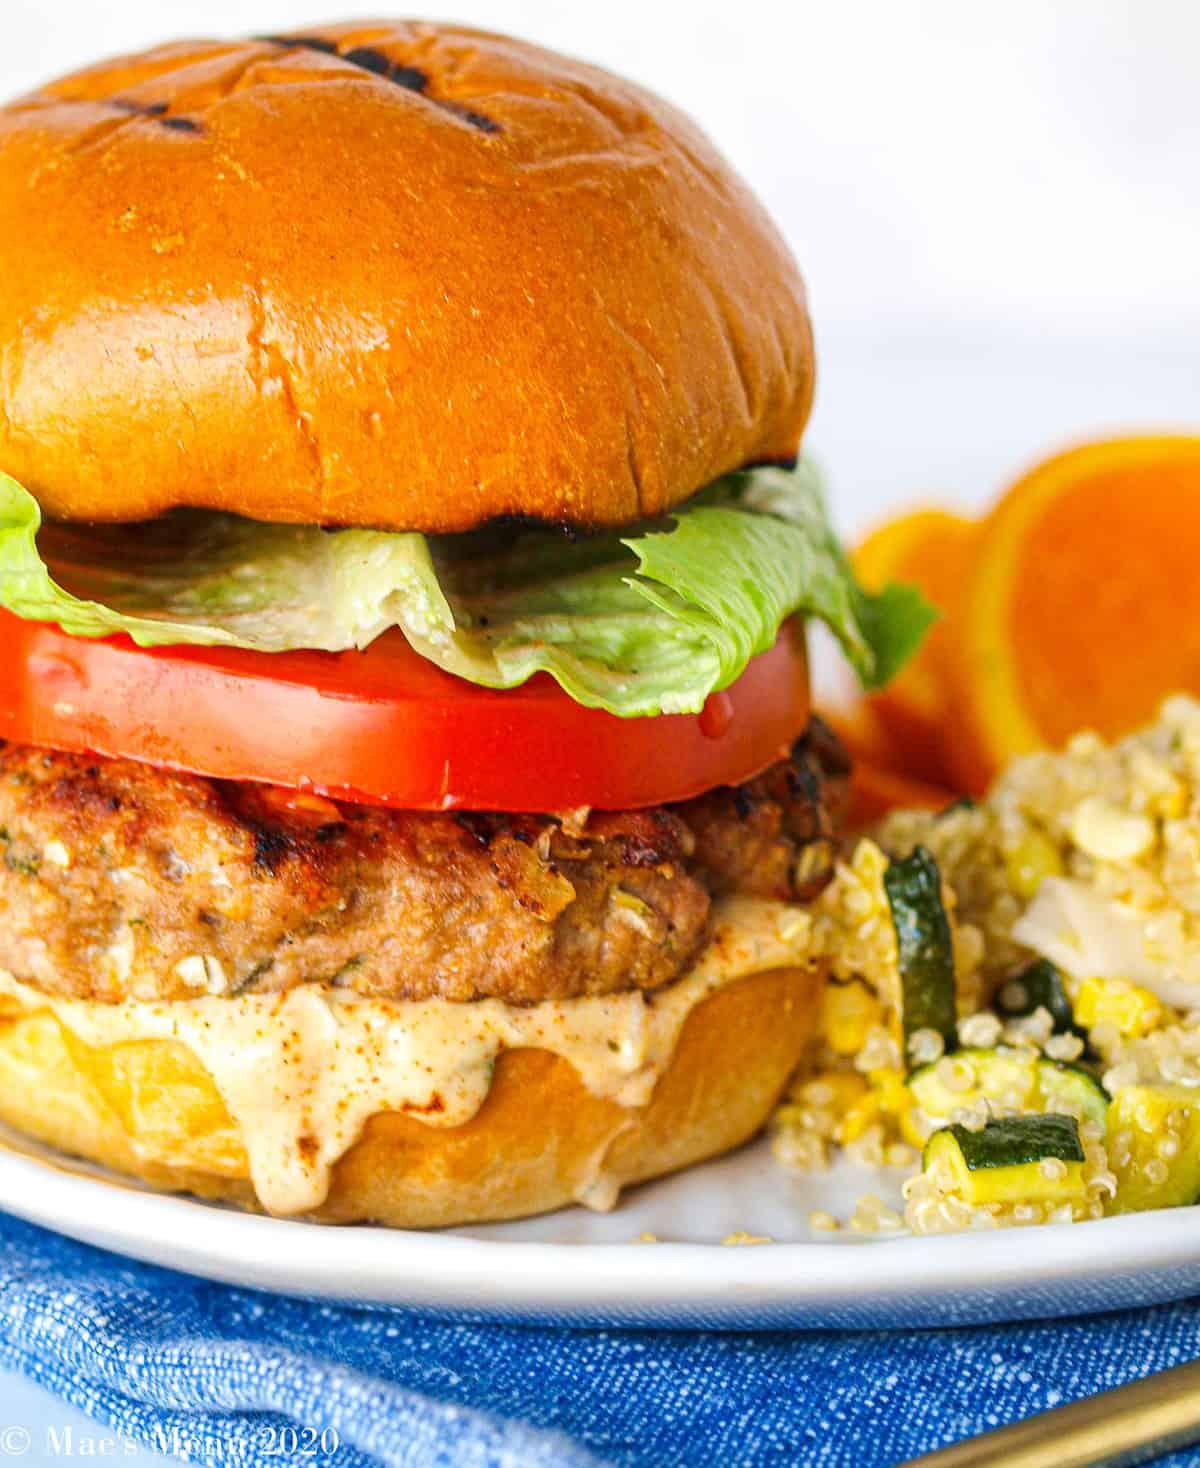 A jamaican jerk turkey burger on a white plate with quinoa and oranges.